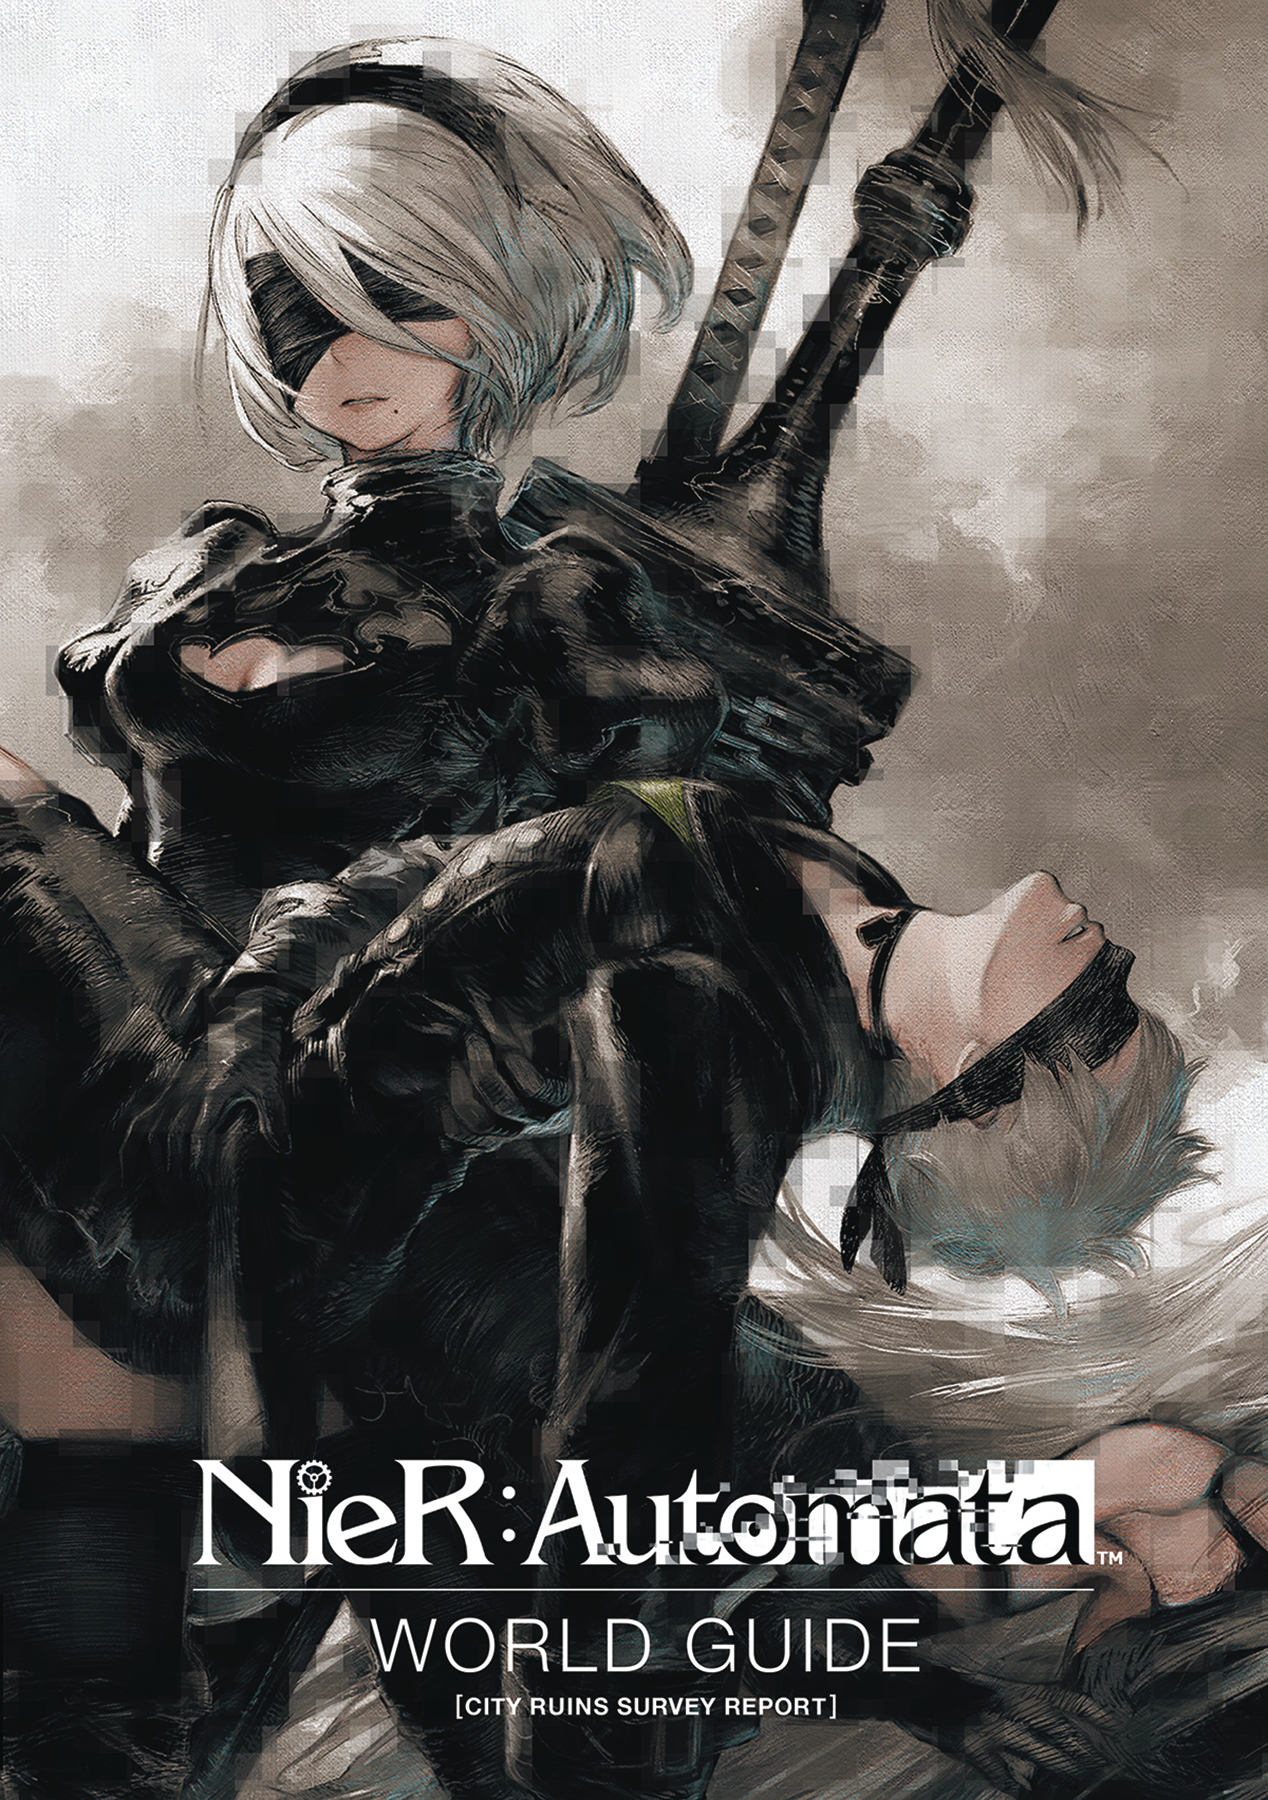 NIER HC AUTOMATA WORLD GUIDE